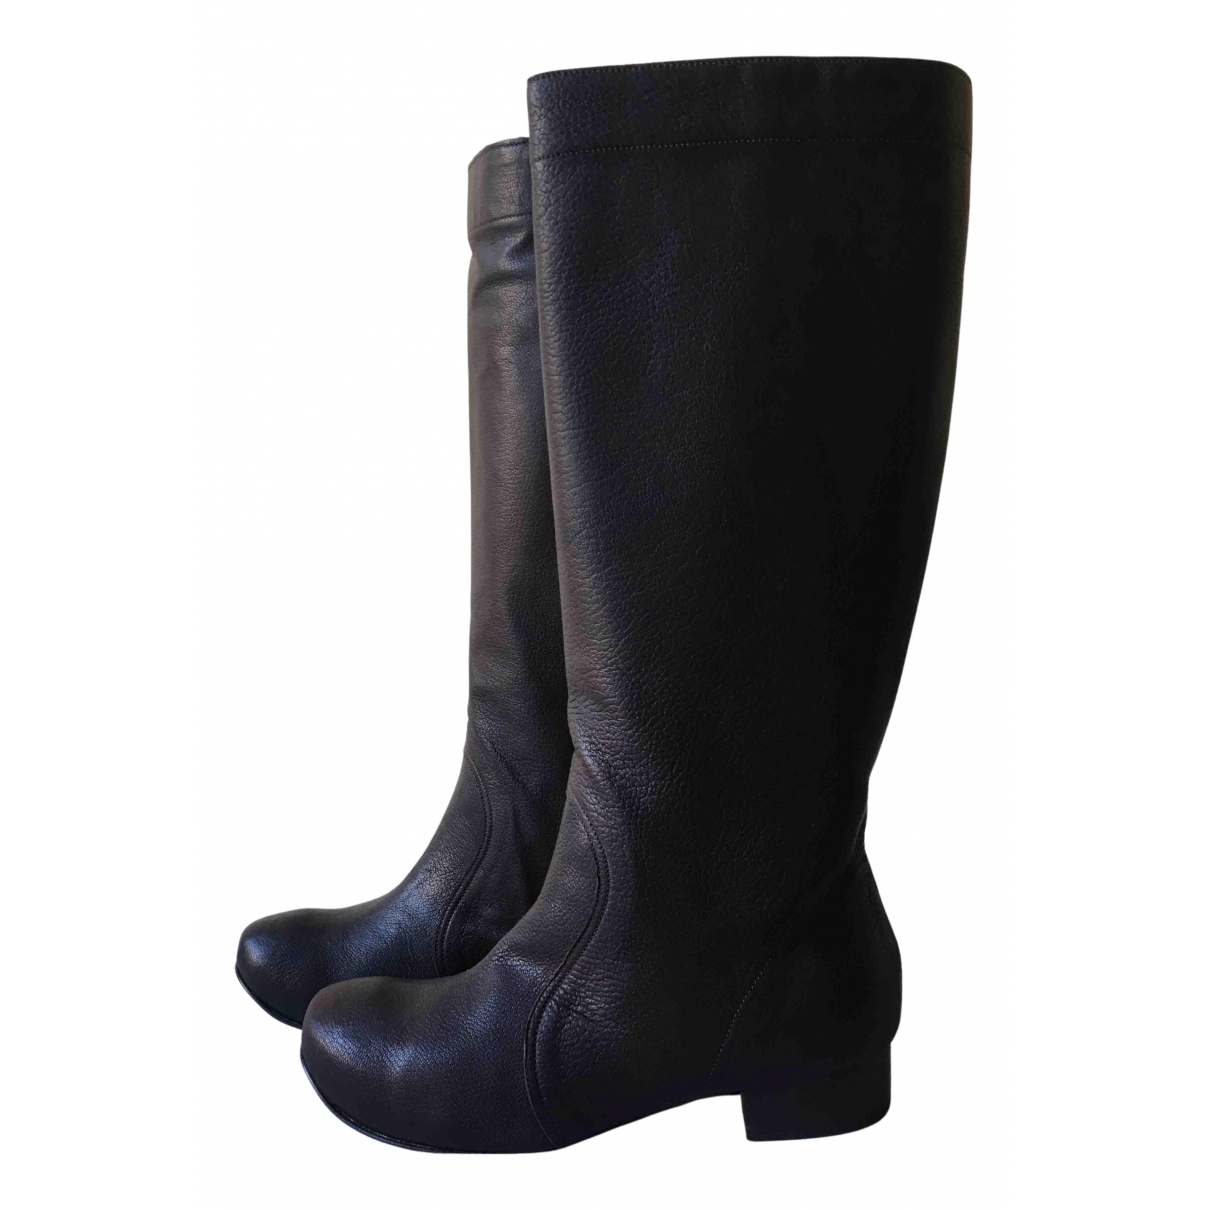 Marni N Brown Leather Boots for Women 36 EU